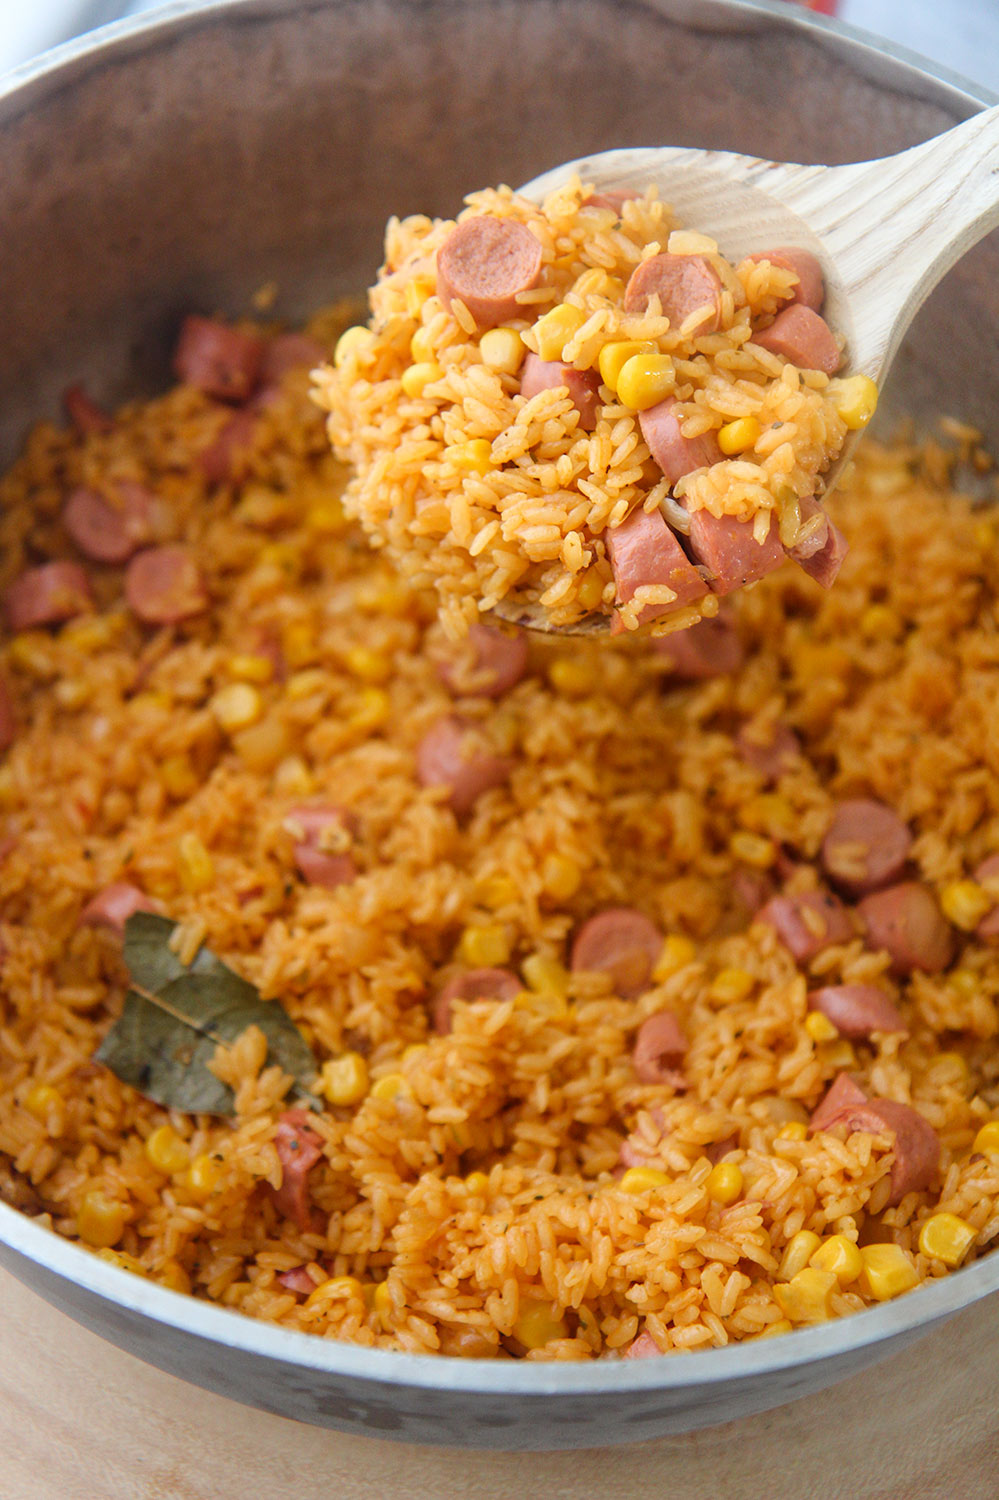 a wooden spoon filled with arroz con salchichas.